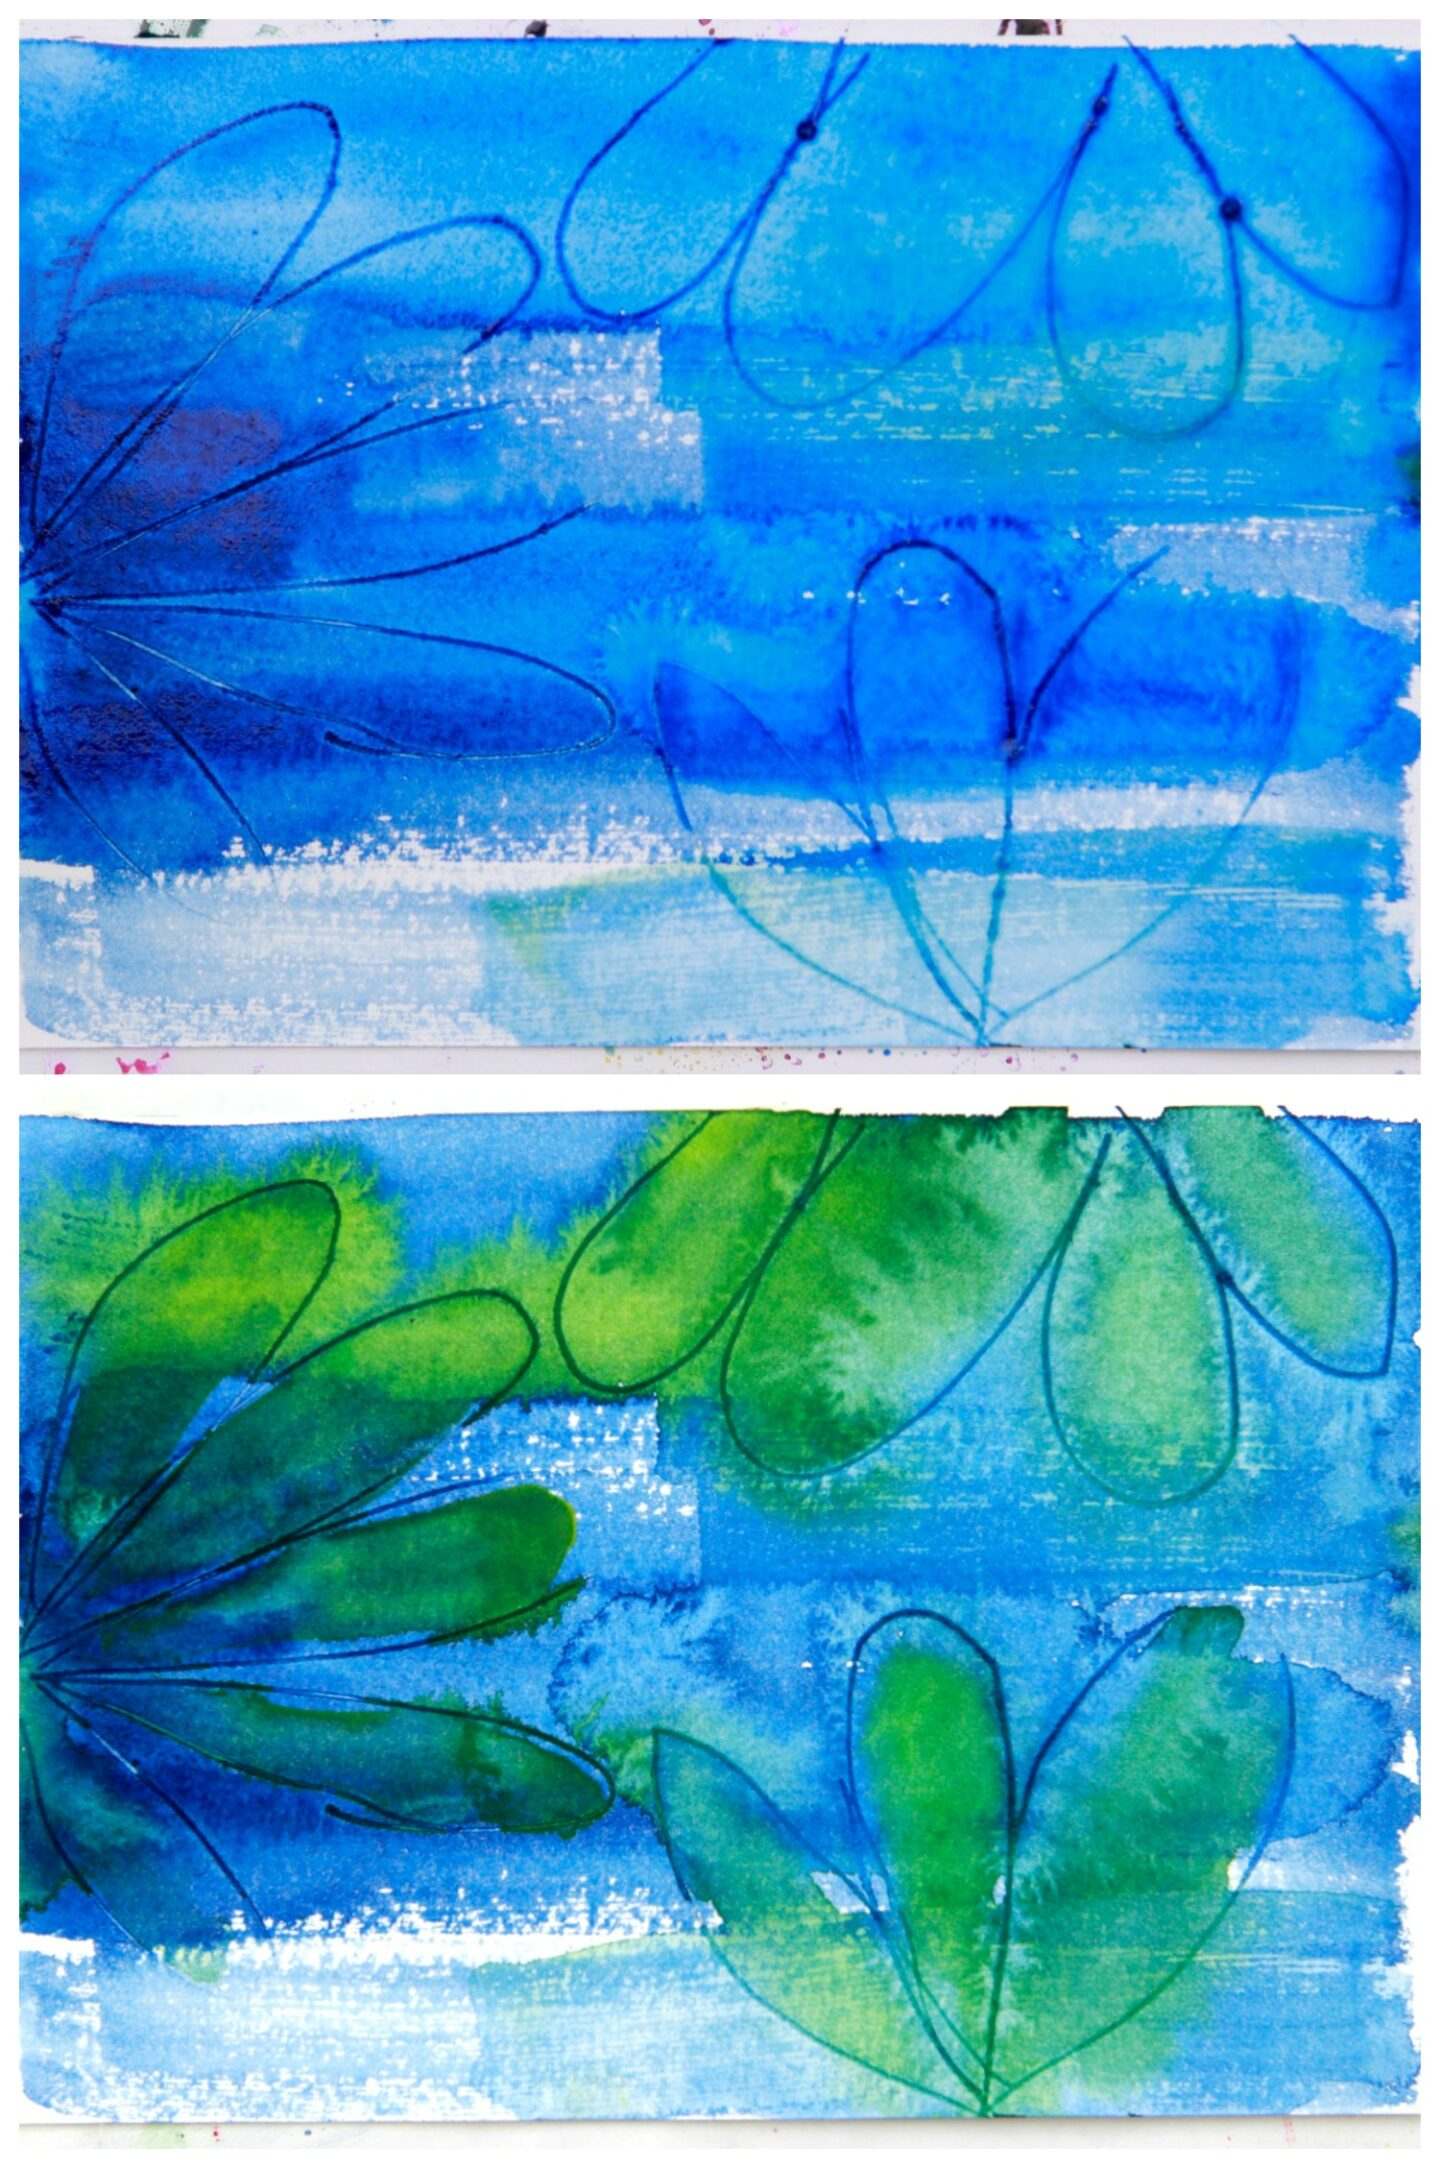 incised lines on watercolor blue background